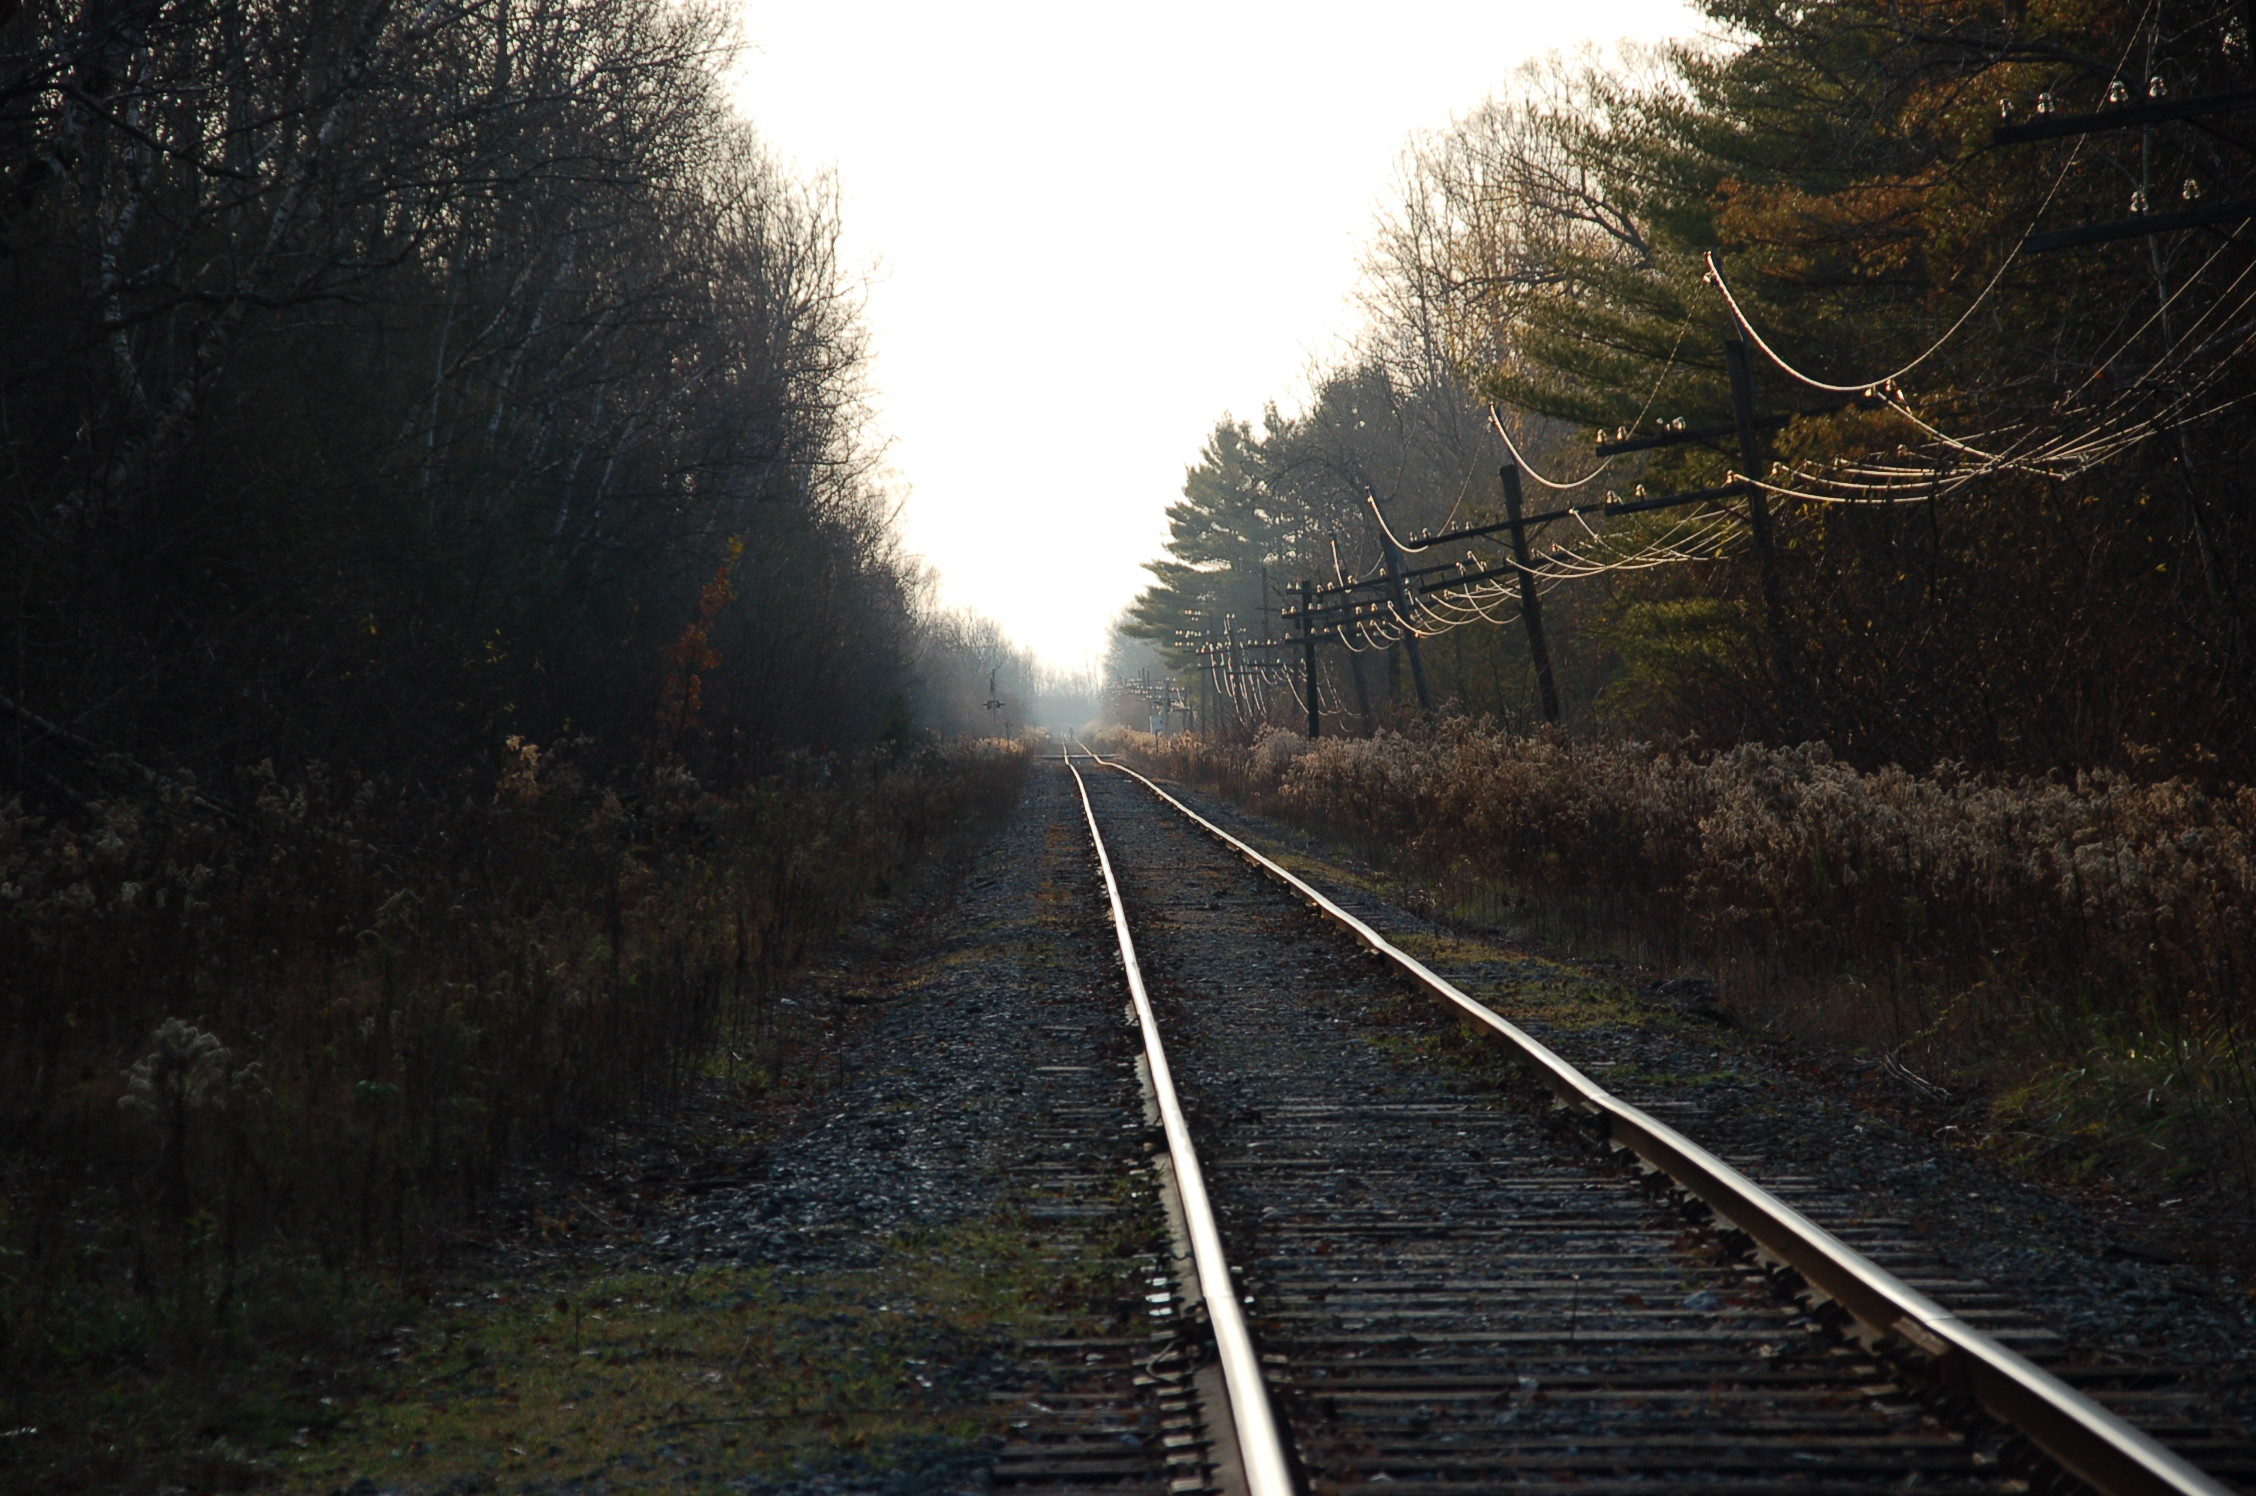 6 financial mistakes that could derail your retirement